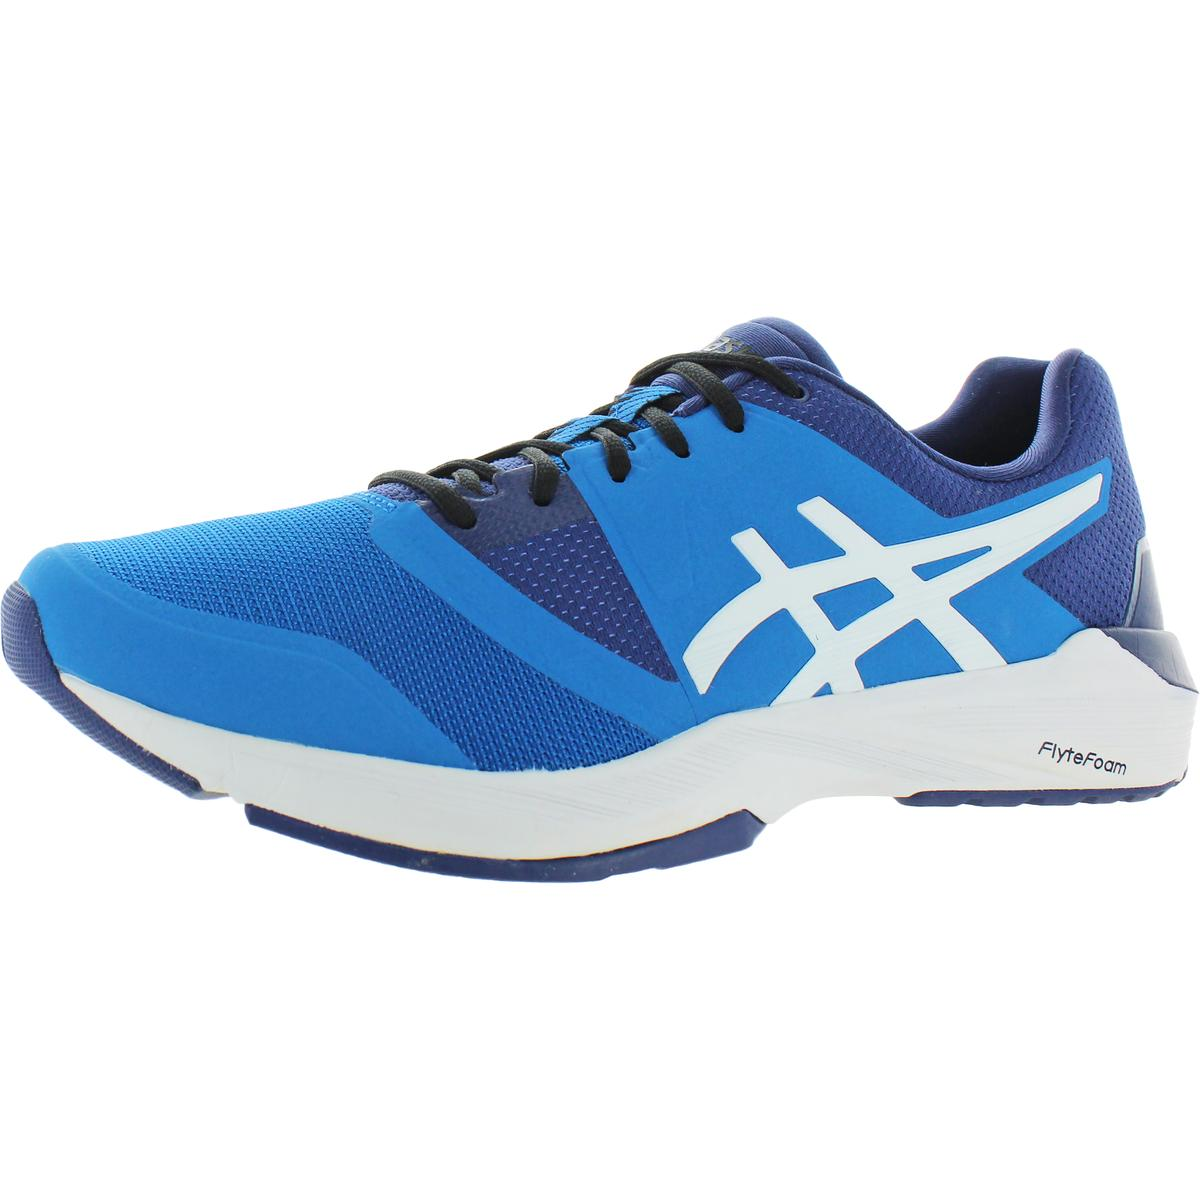 Details about Asics Mens Gel Quest FF Flyte Foam Low Top Running Shoes Sneakers BHFO 6396